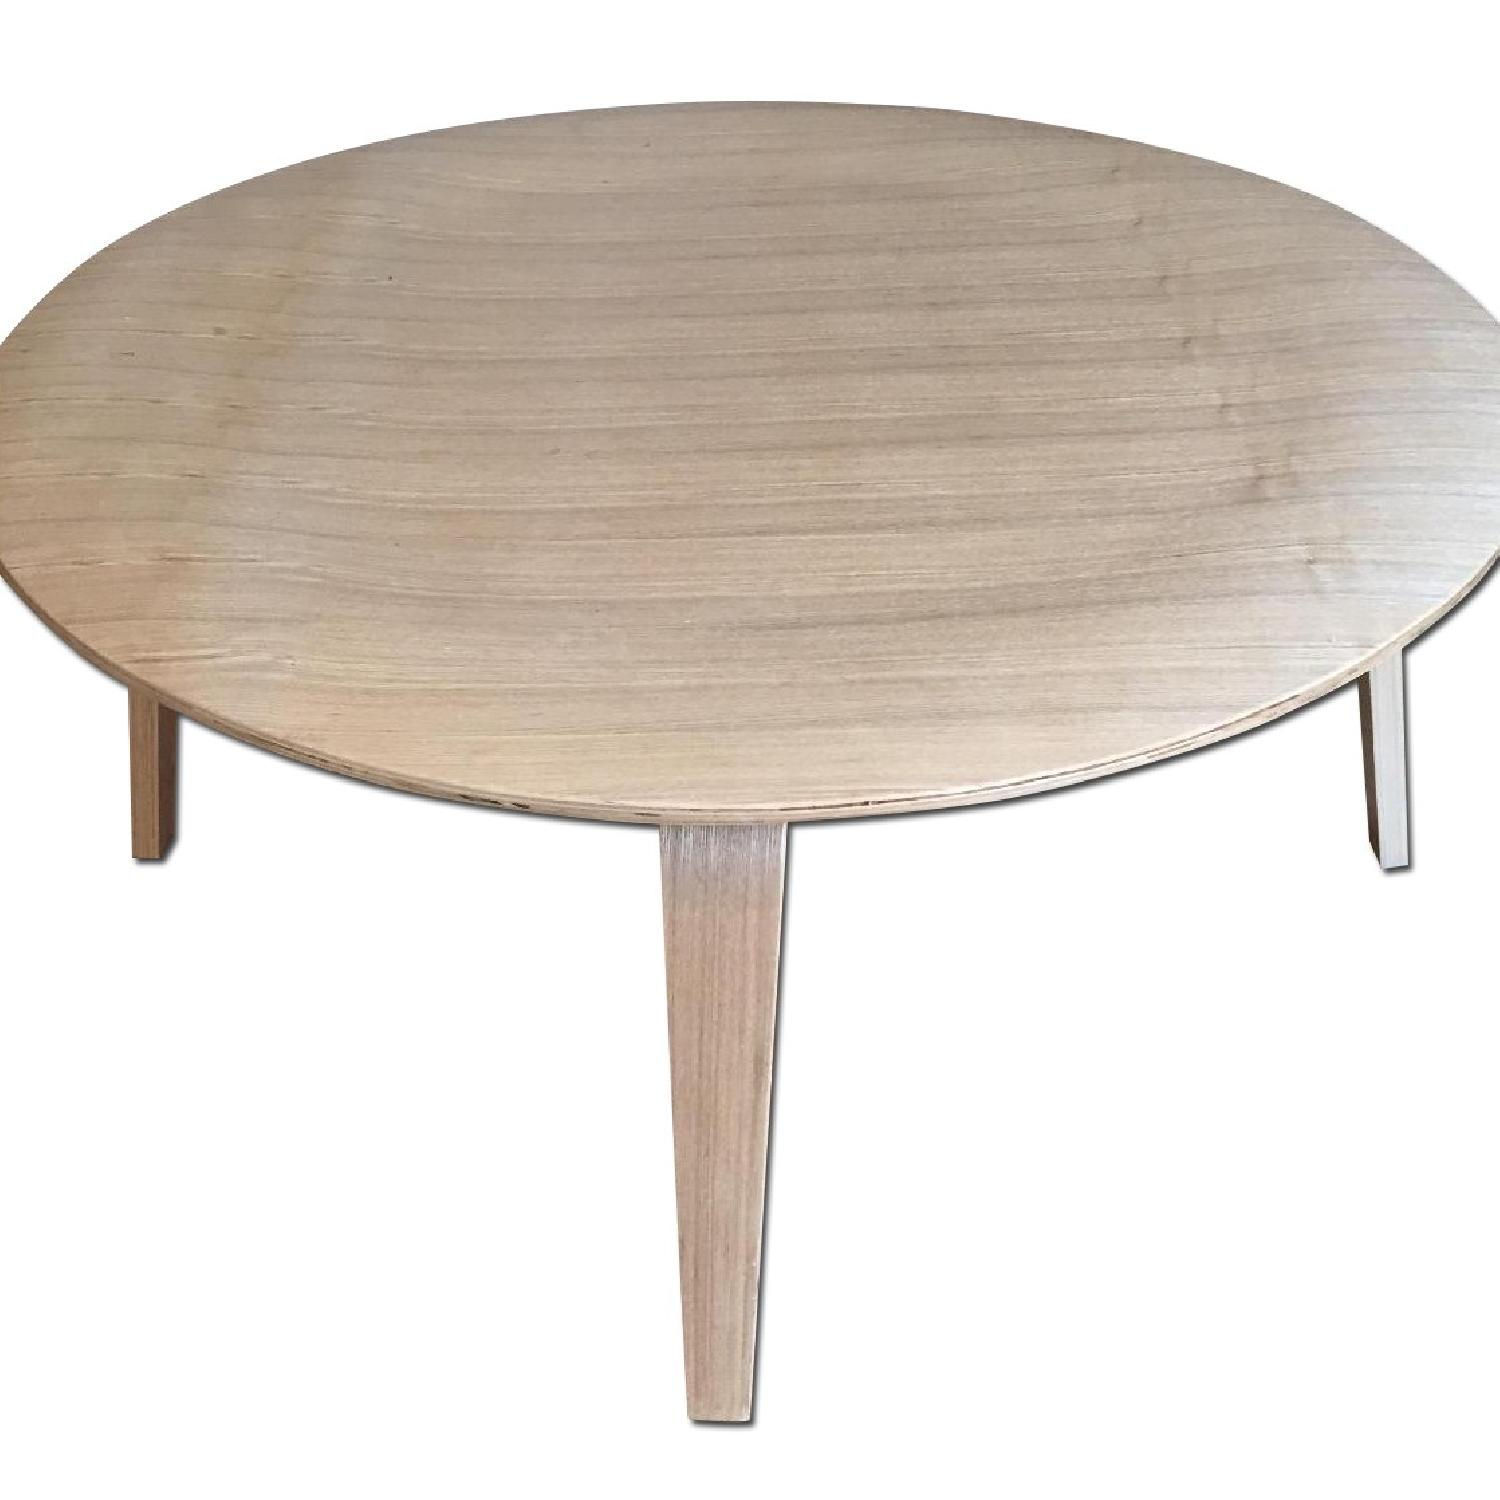 LexMod Wooden Round Coffee Table - image-0